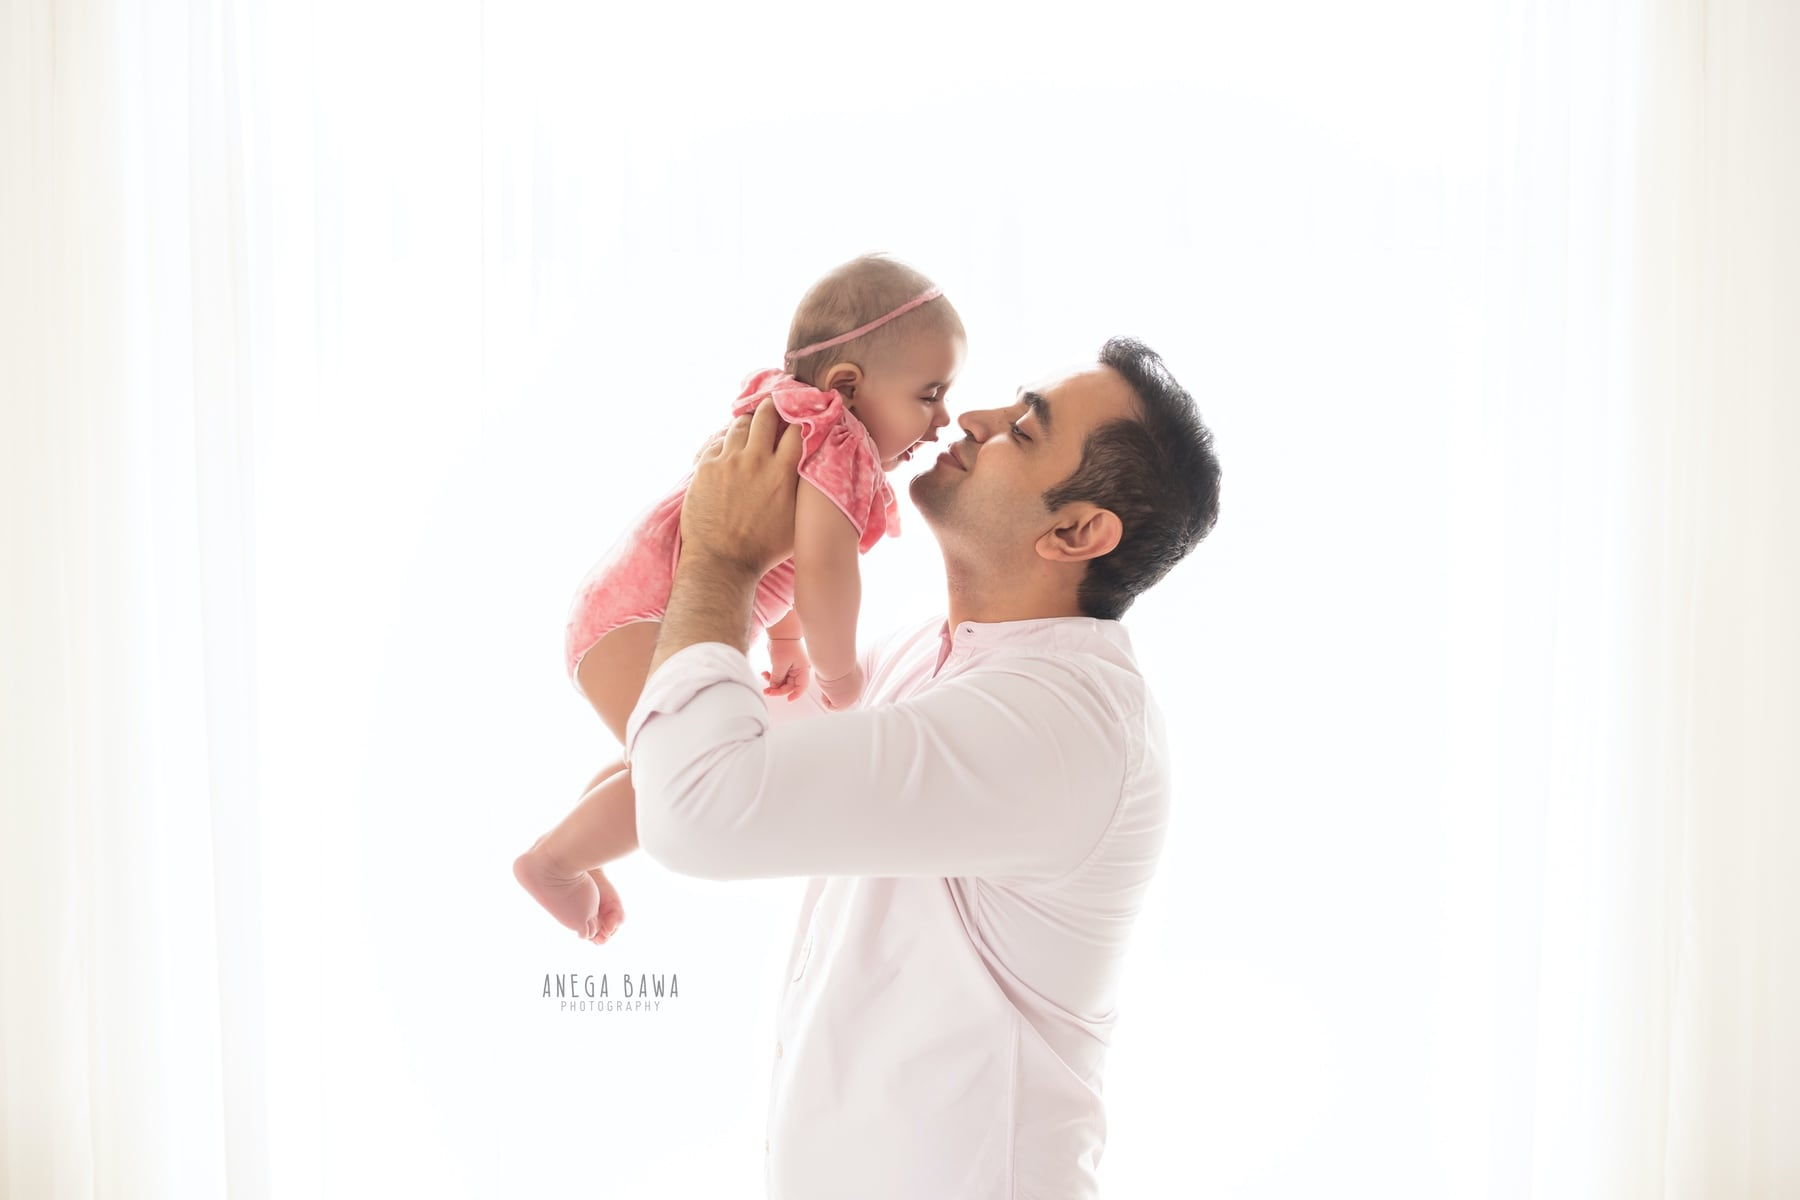 242109-white-background-pink-father-and-baby-photography-delhi-5-6-7-months-baby-photoshoot-gurgaon-anega-bawa